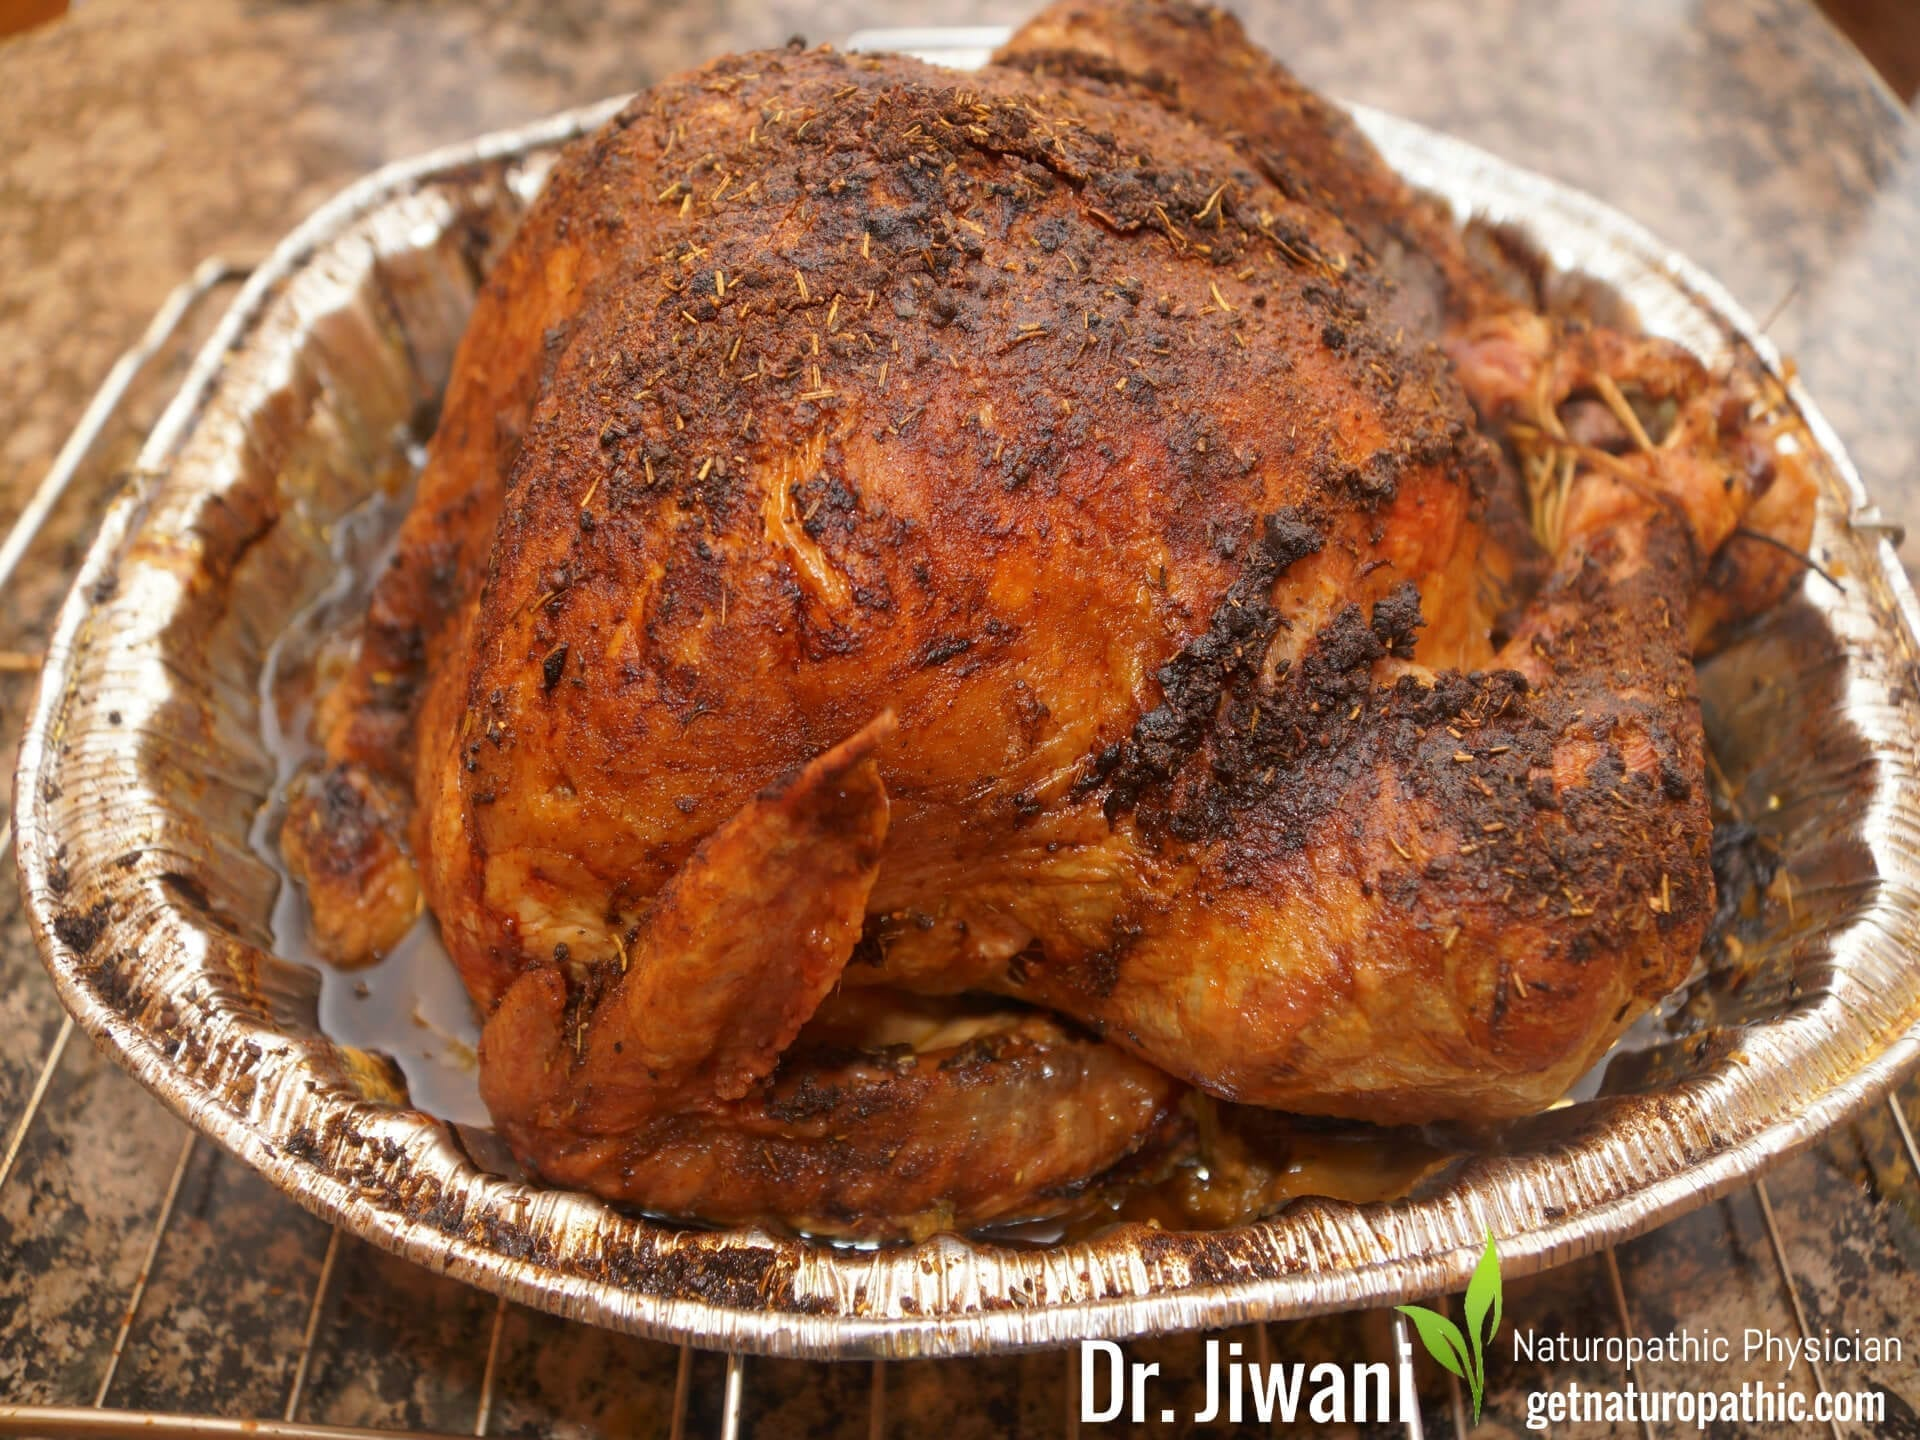 Dr. Jiwani's Roasted Turkey | Dr. Jiwani's Naturopathic Nuggets Blog